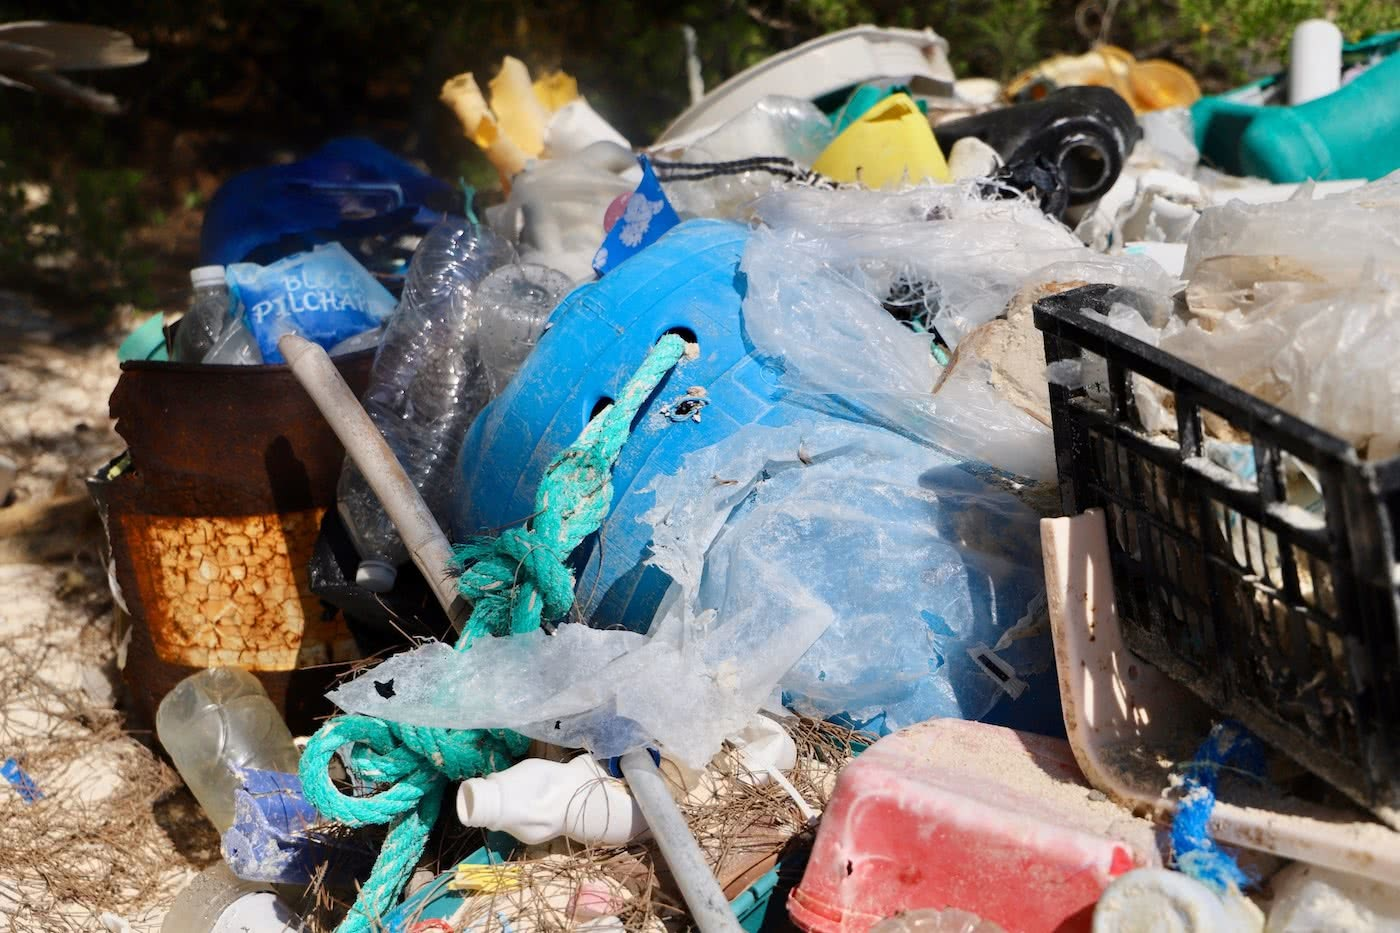 Paradise, Lost :: Lizard Island (QLD) Solaye Snider plastic waste, pollution, beach rubbish